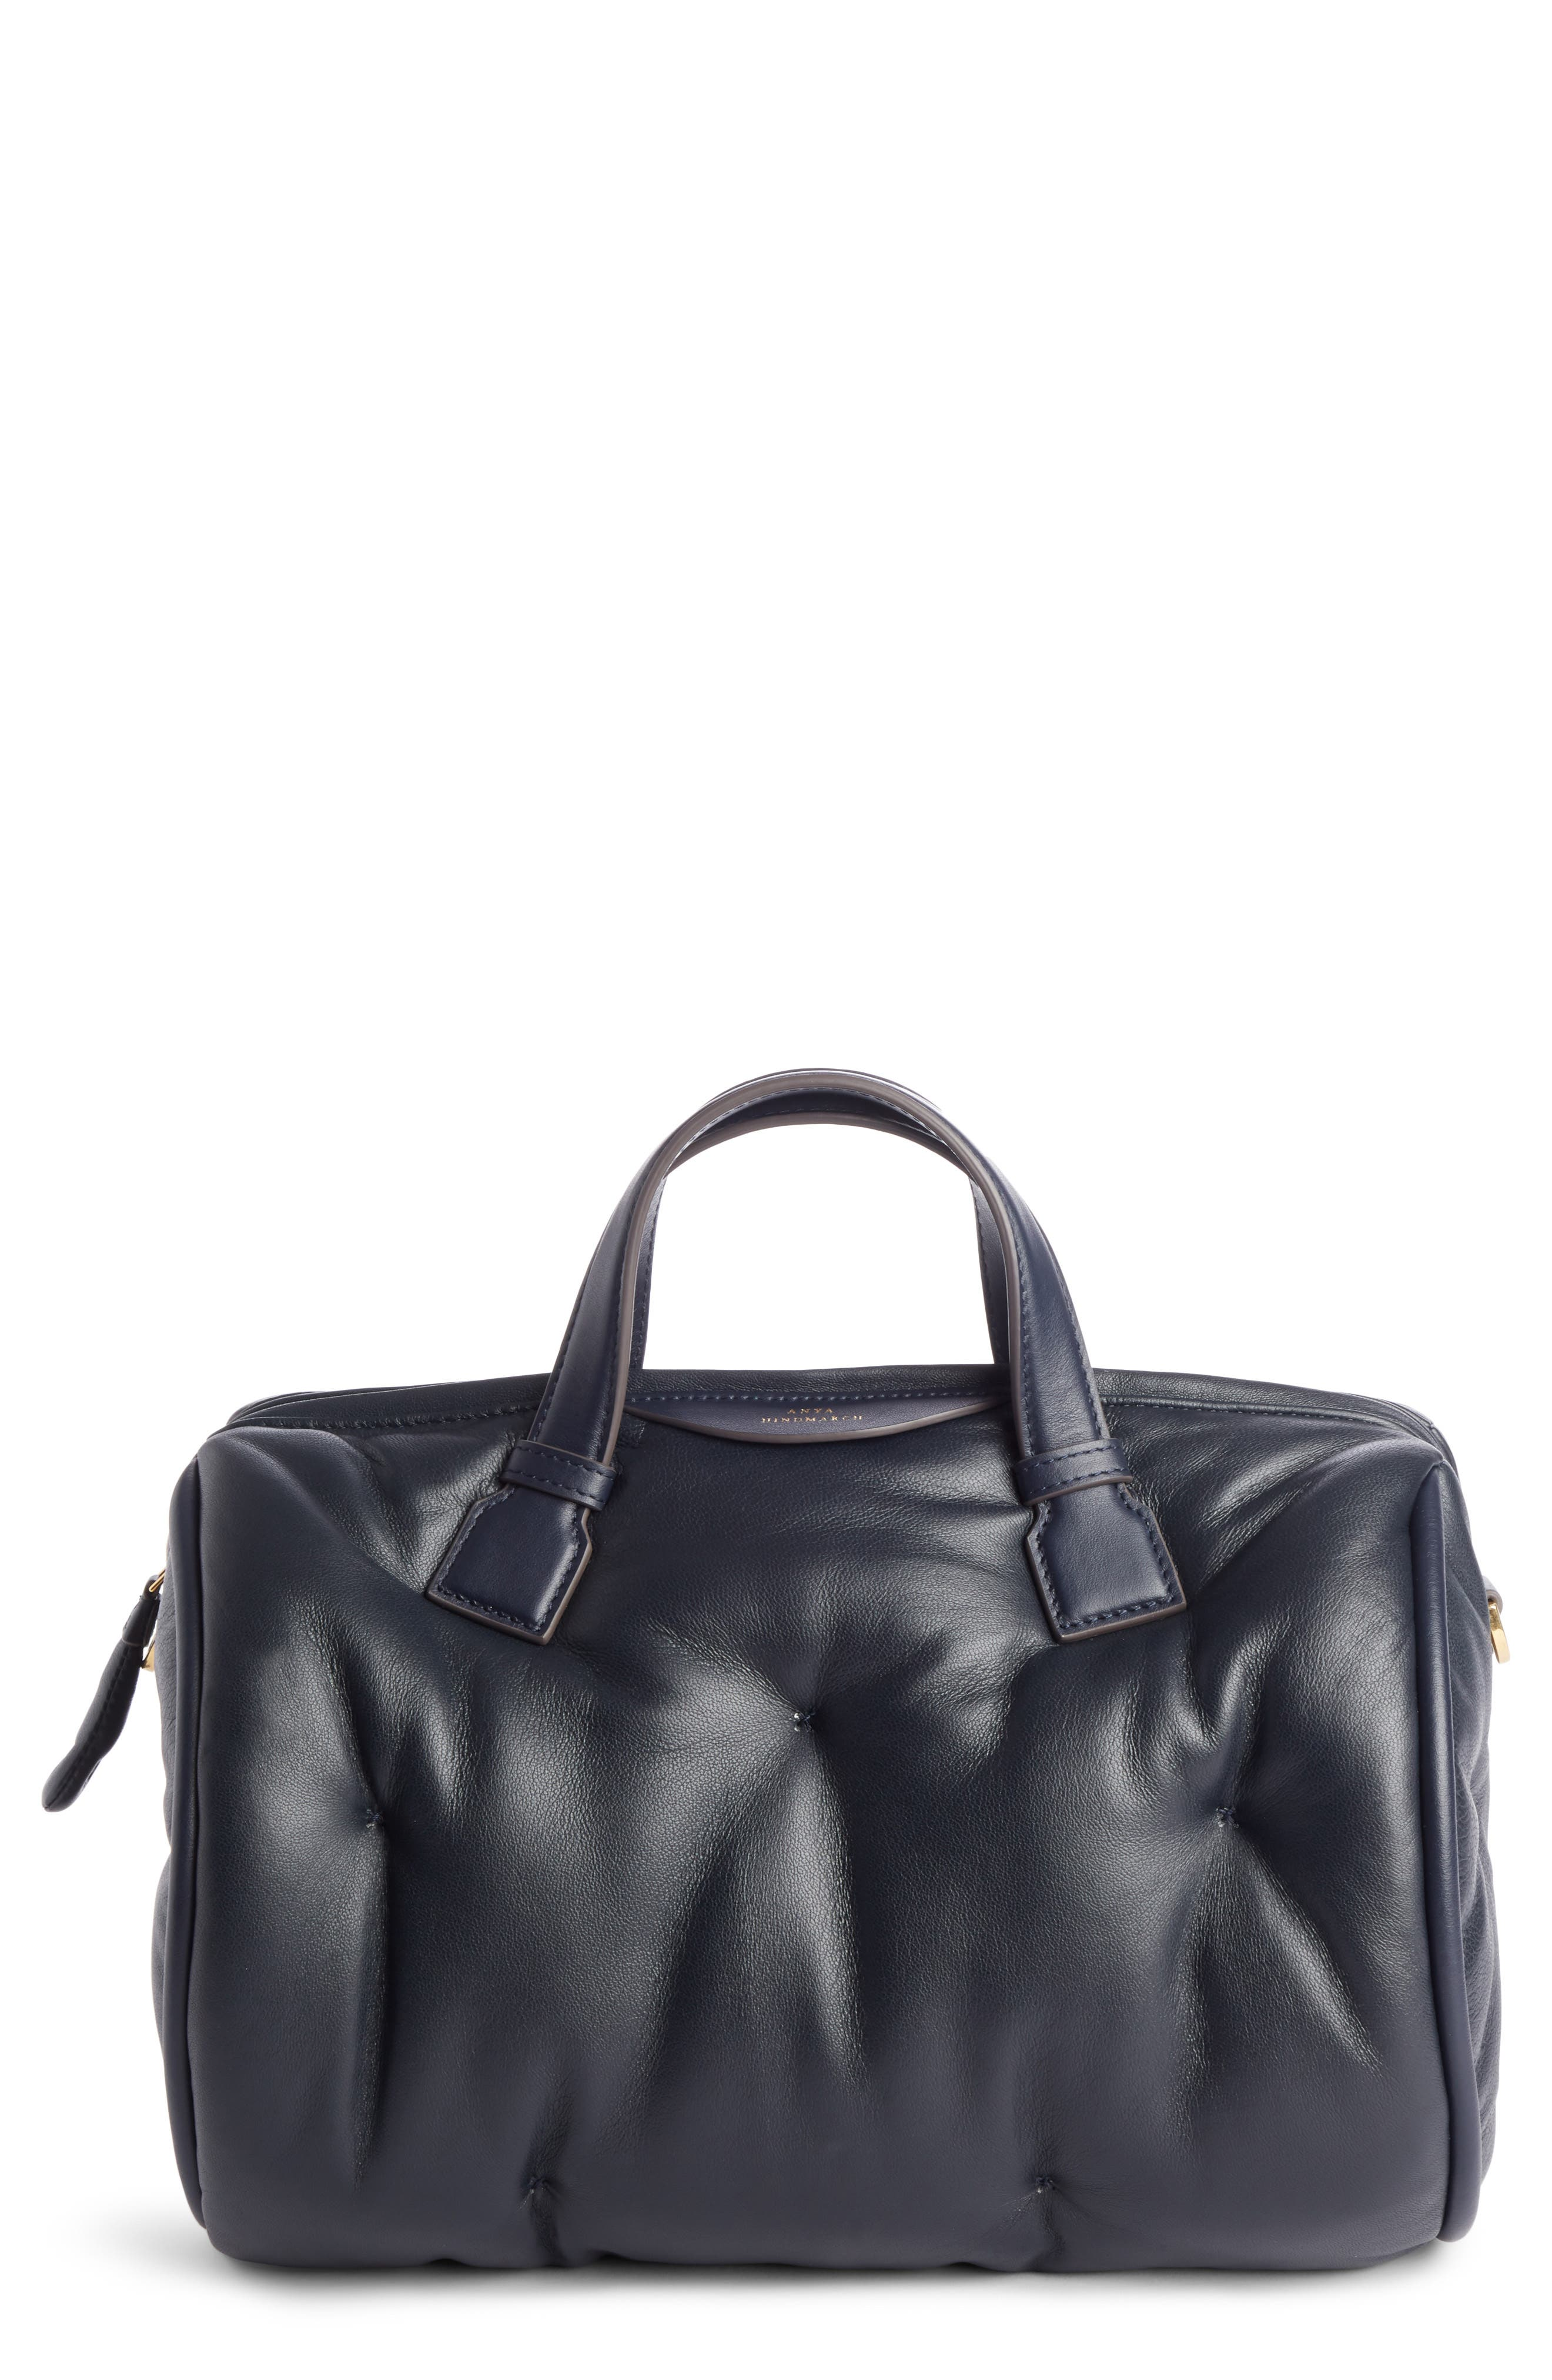 Alternate Image 1 Selected - Anya Hindmarch Chubby Barrel Nappa Leather Satchel